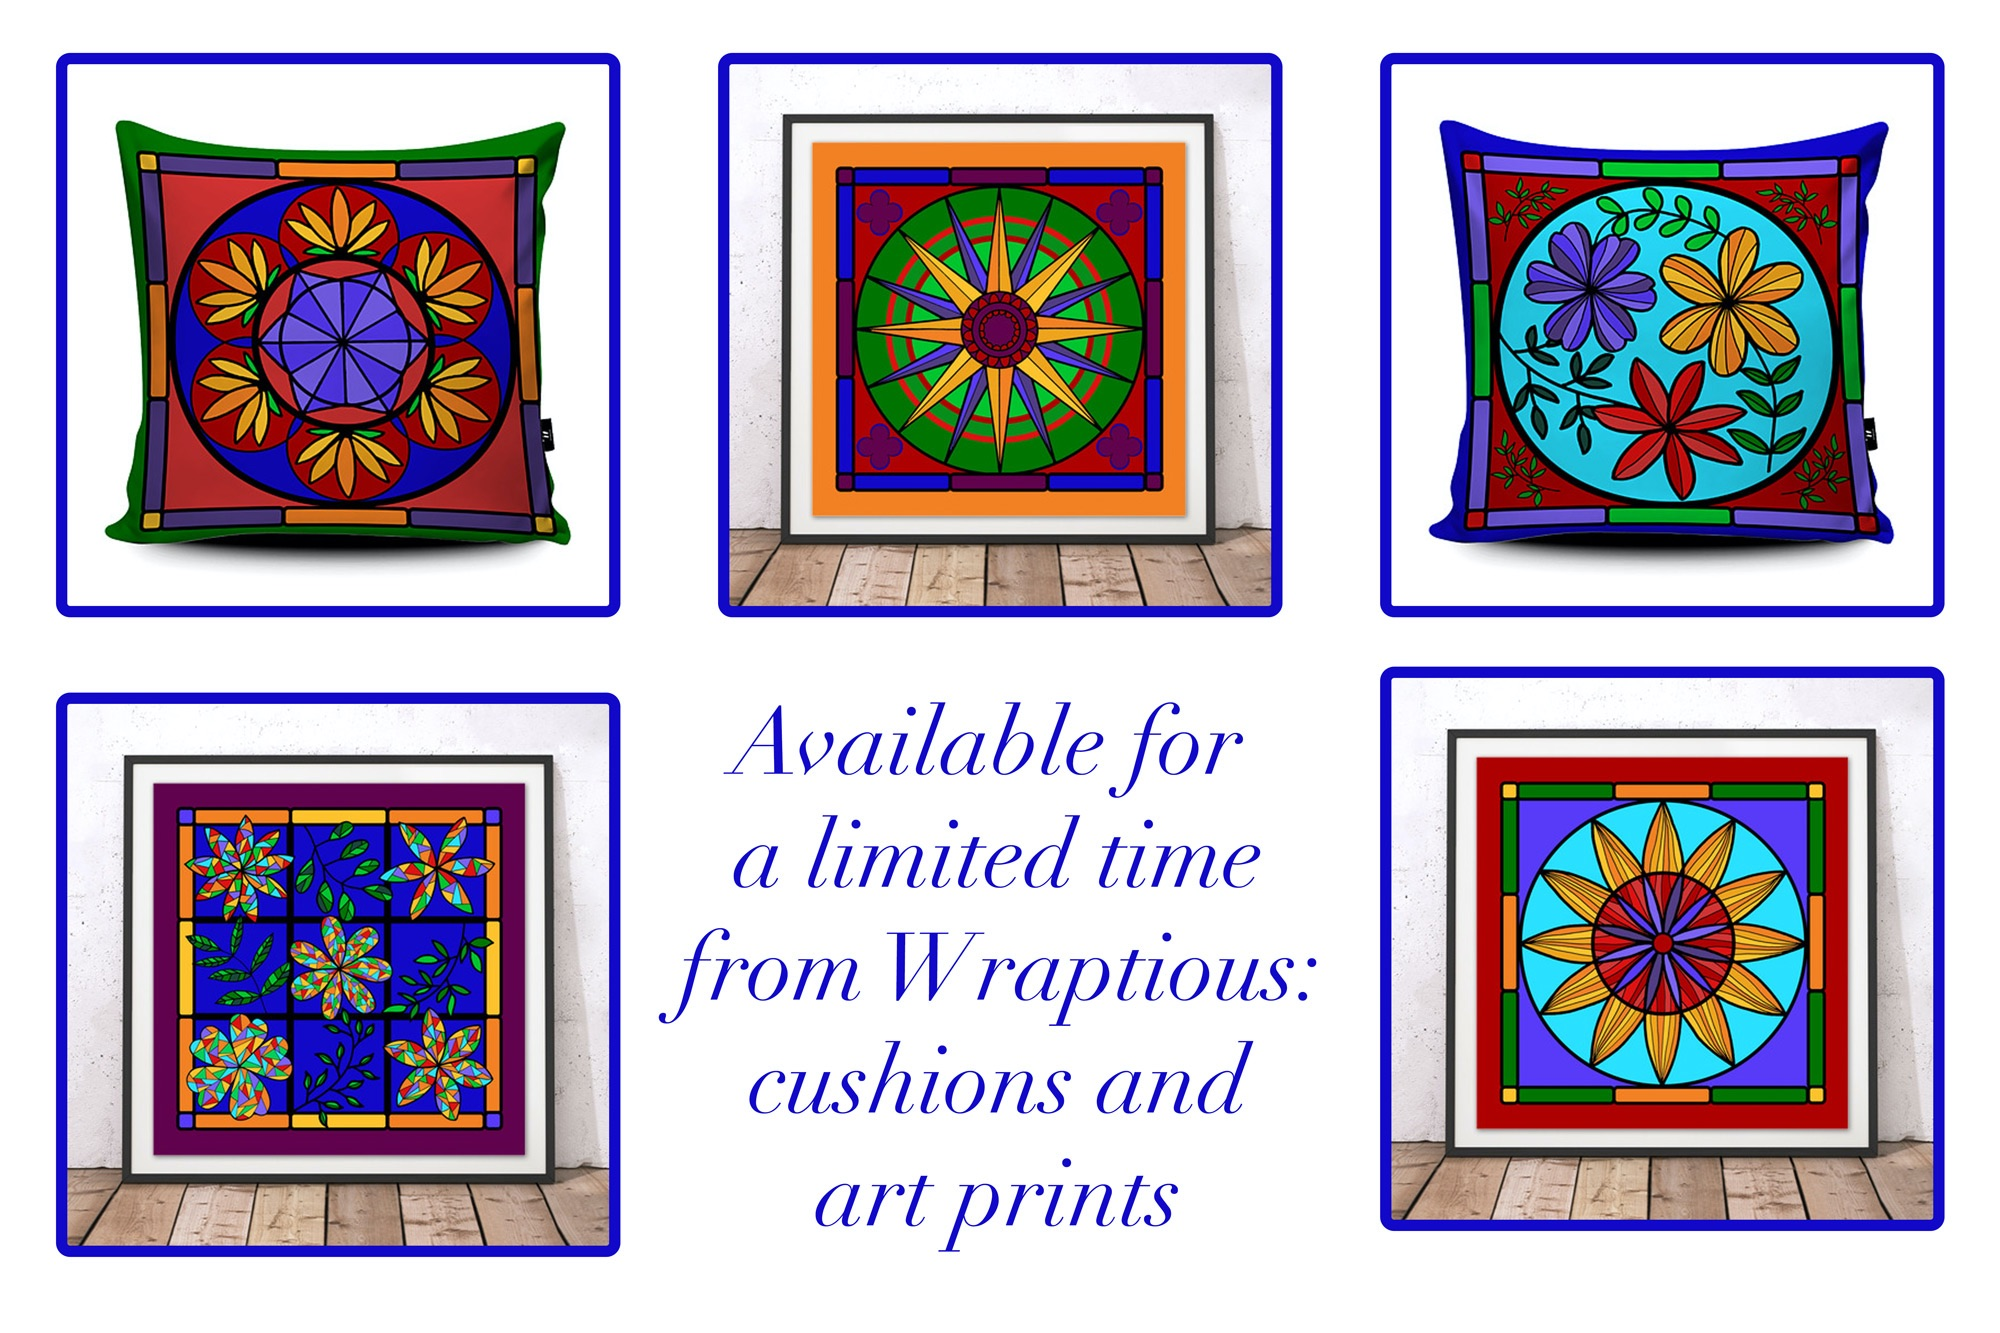 Limited time availability products